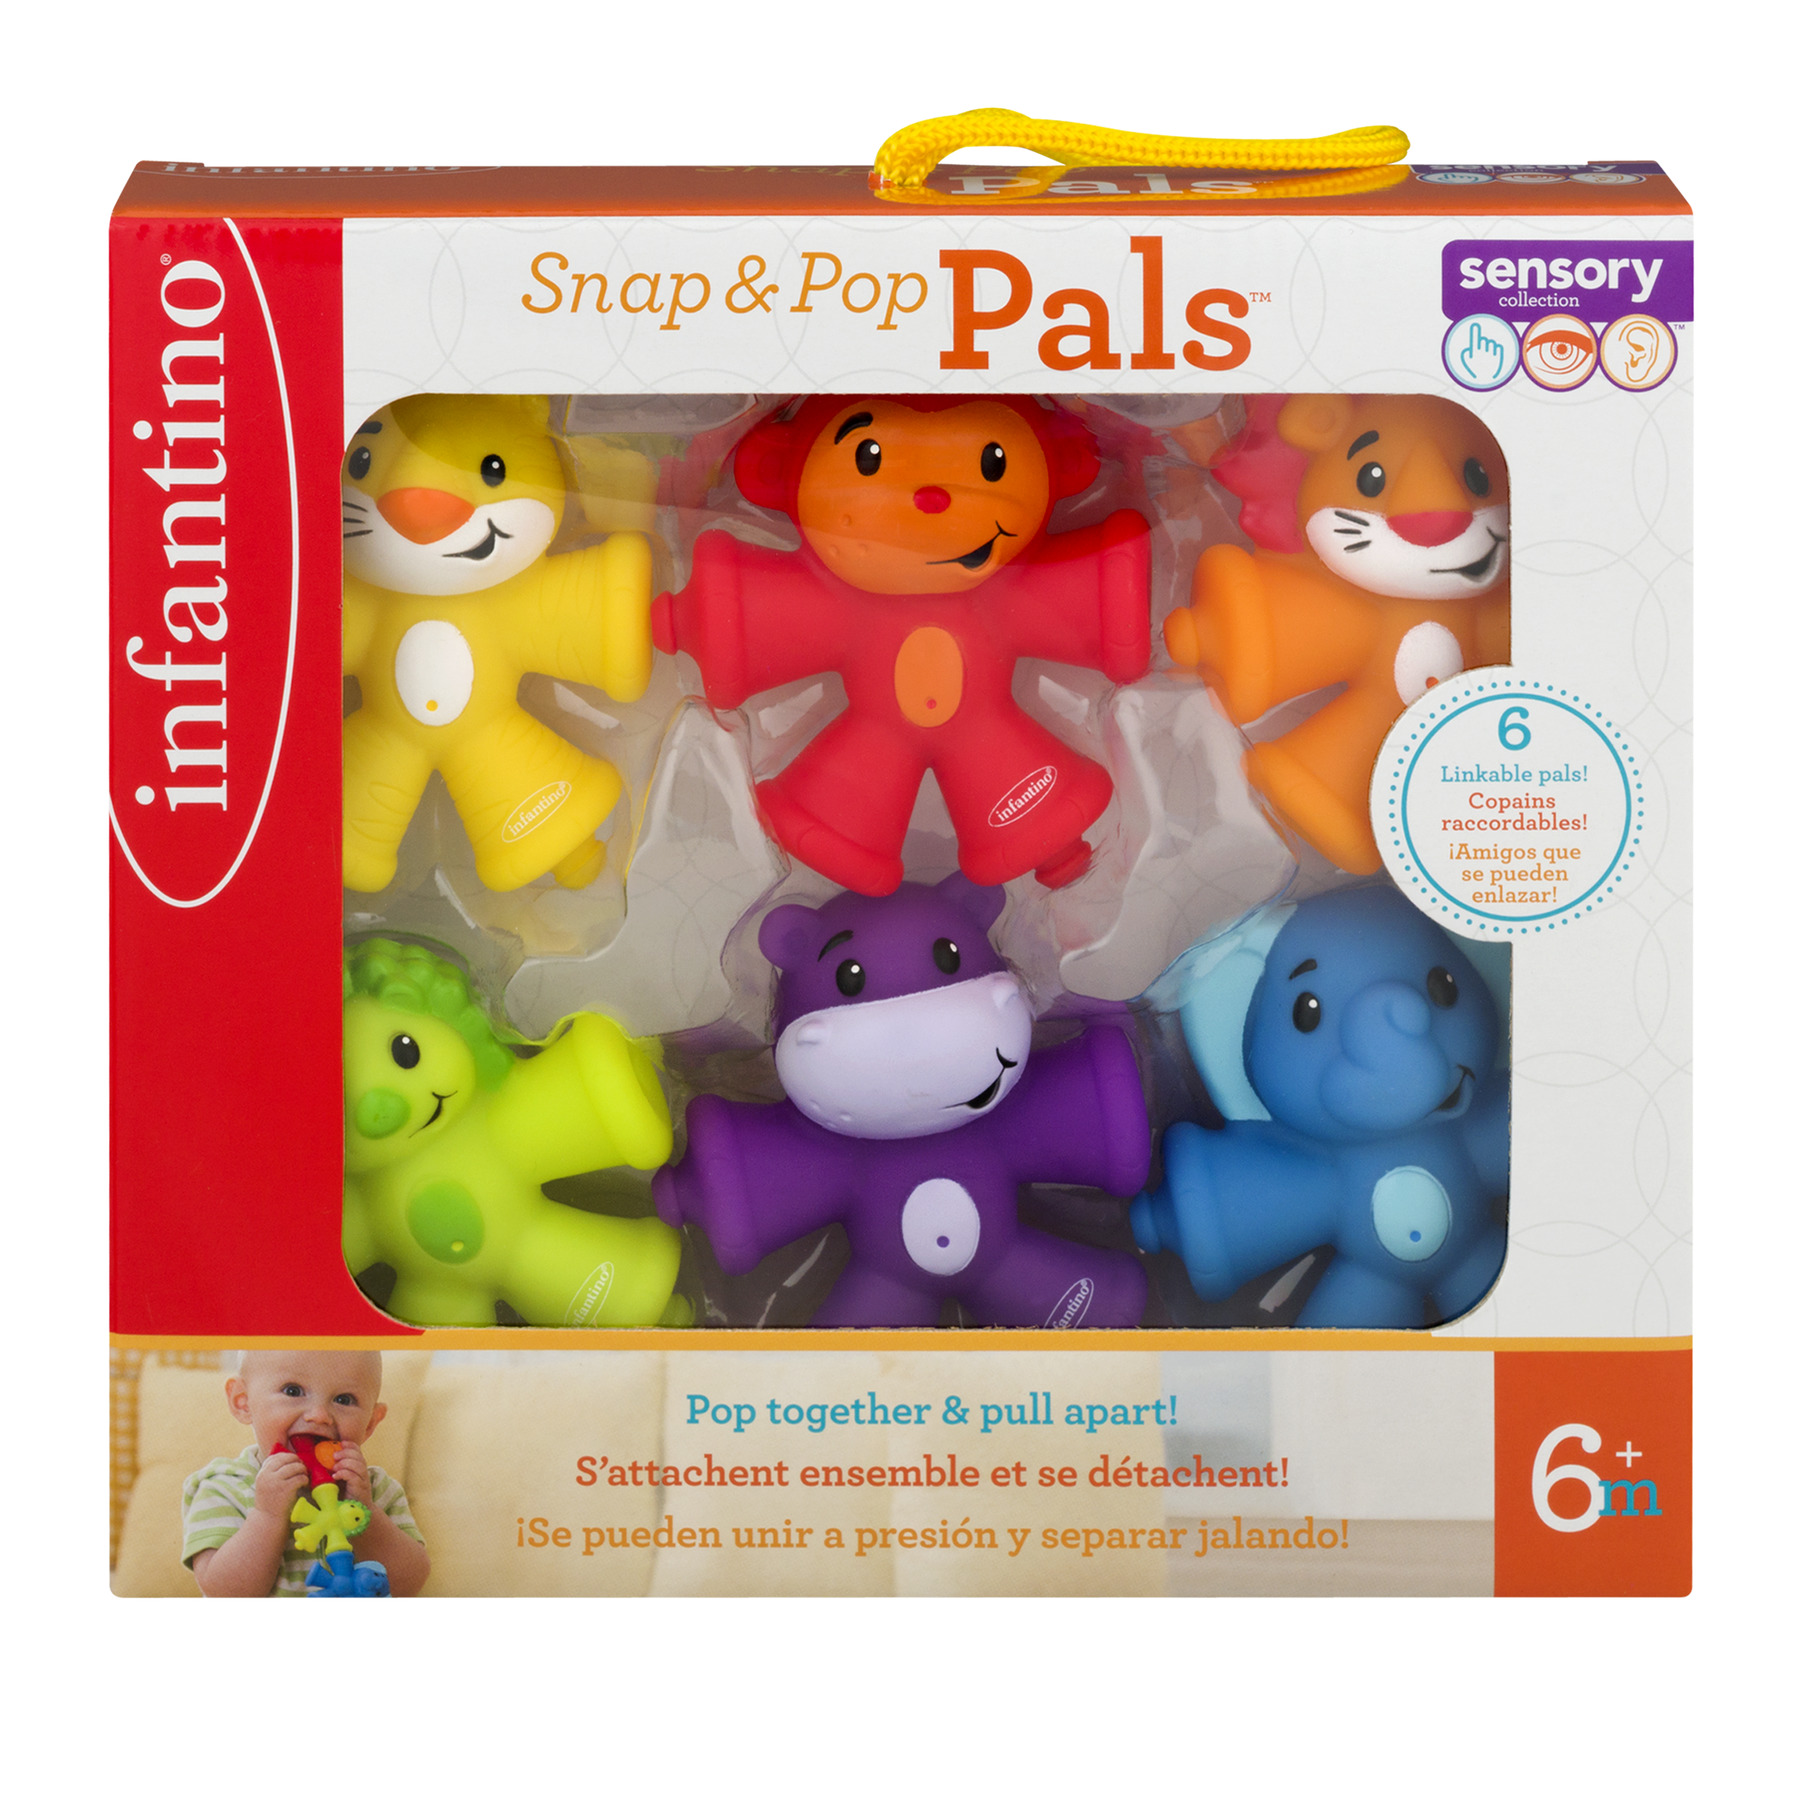 Infantino Snap & Pop Pals 6+m - 6 CT6.0 CT